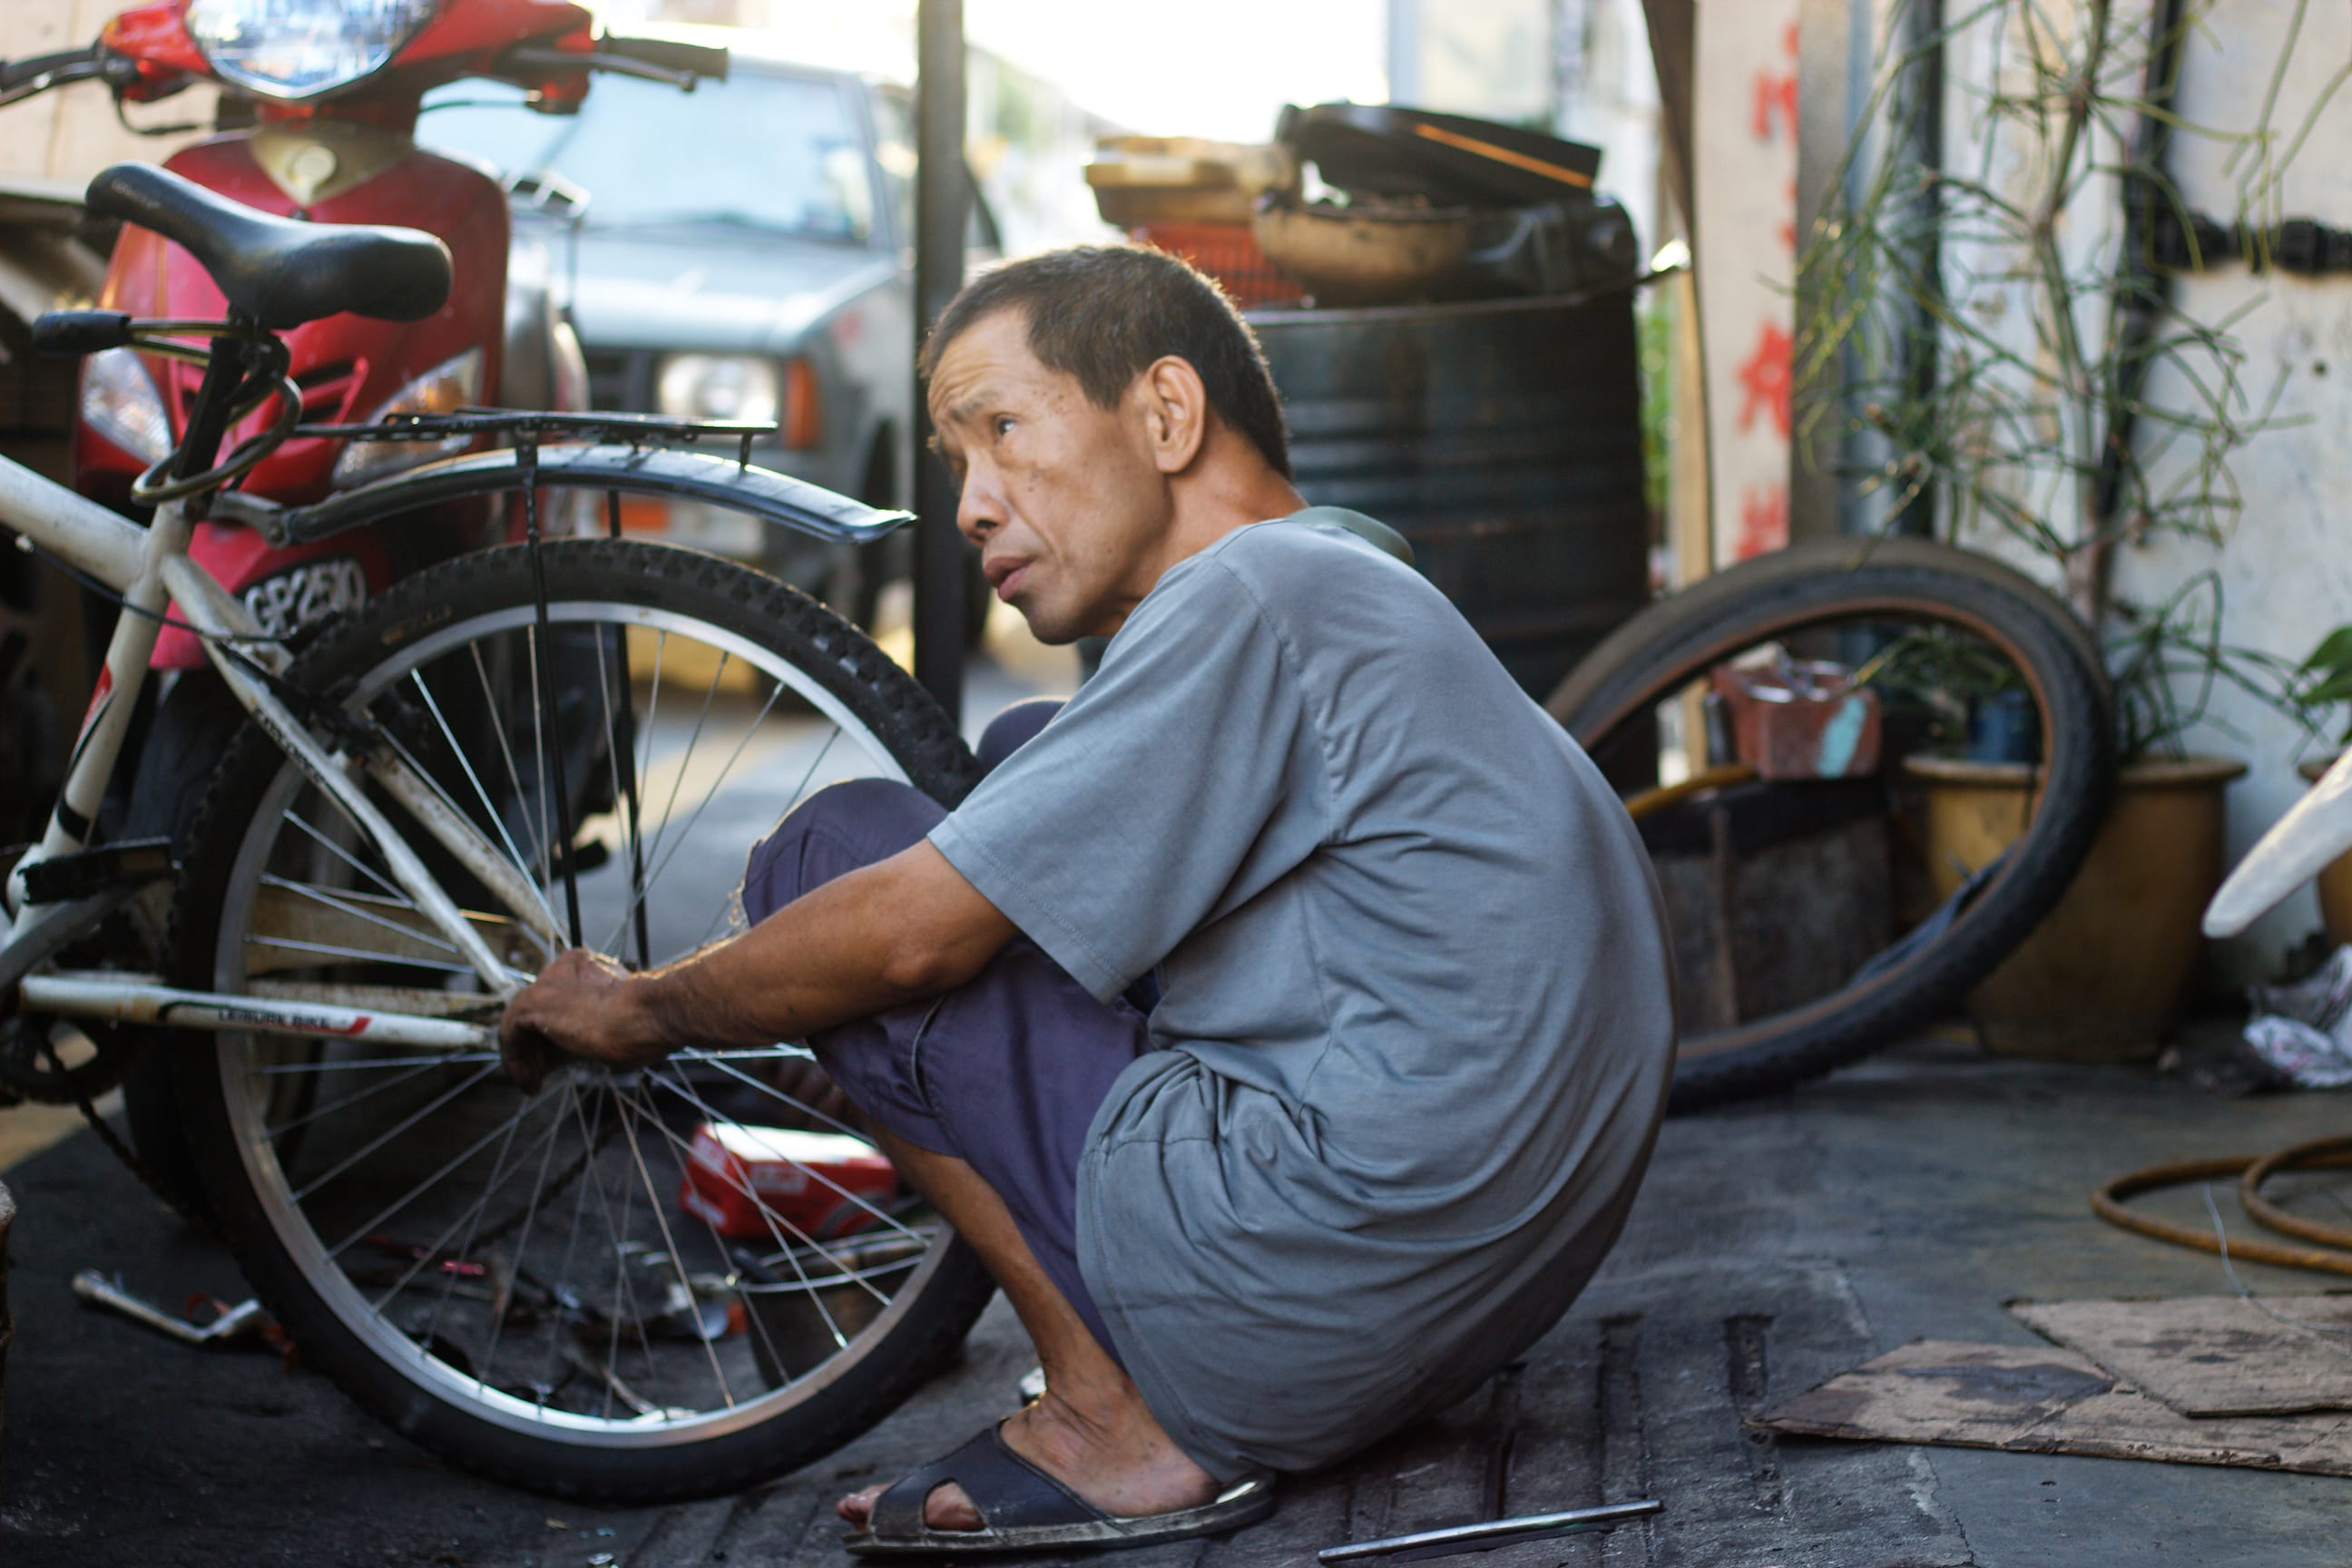 A Bicycle Mechanic in Streets of George Town